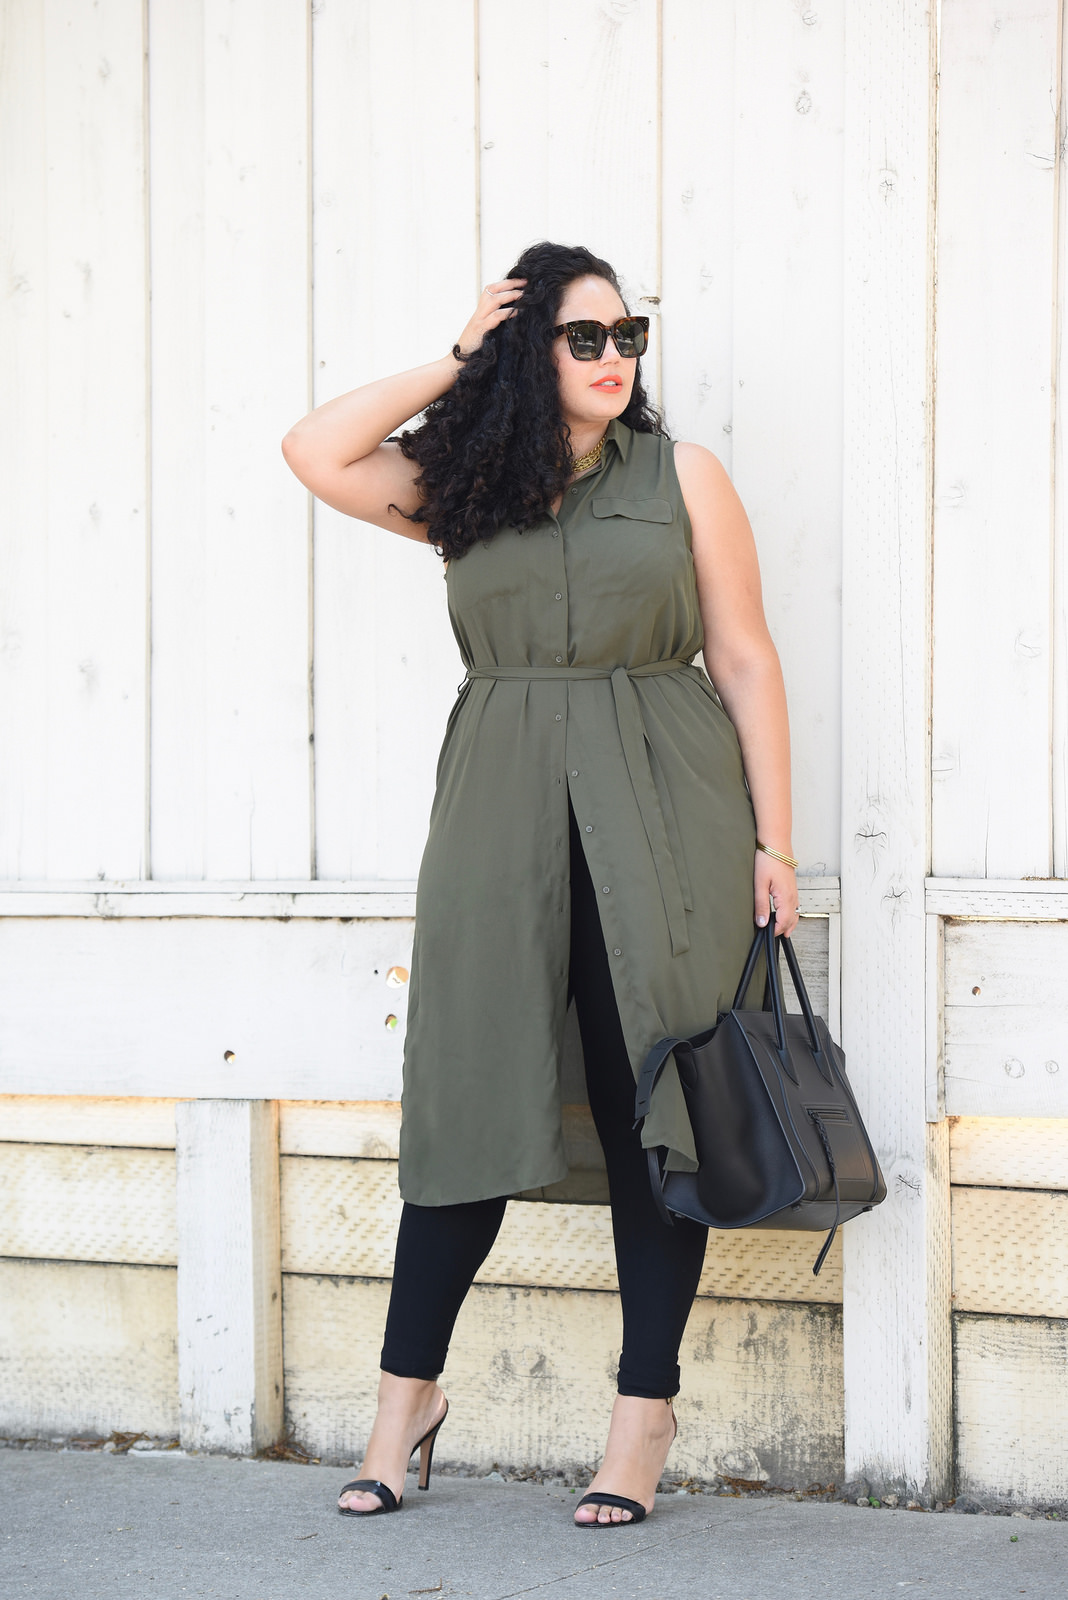 Tanesha Awasthi, also known as Girl With Curves, wearing a plus size shirtdress over leggings, Celine Audrey sunglasses, heels and Celine phantom.